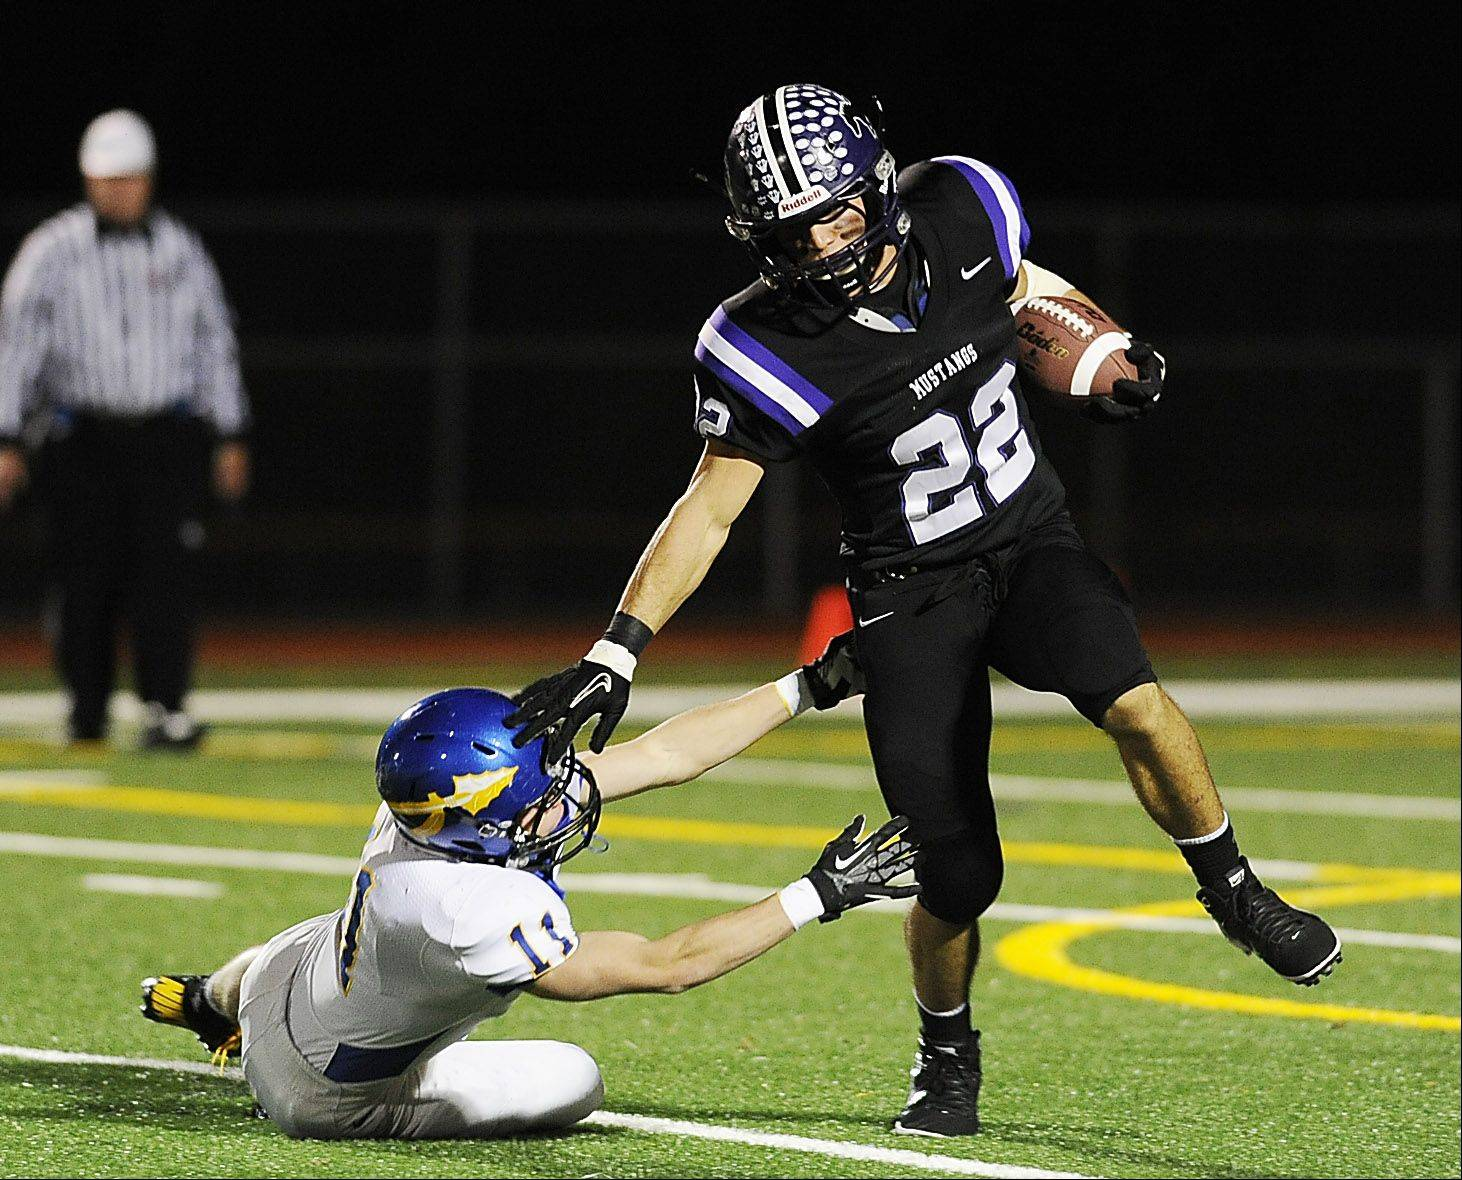 Rolling Meadow's Austin Reed defends off Lake Forest's Andy Nelson in the first quarter in the Class 6A playoff football game at Rolling Meadows High School on Friday.